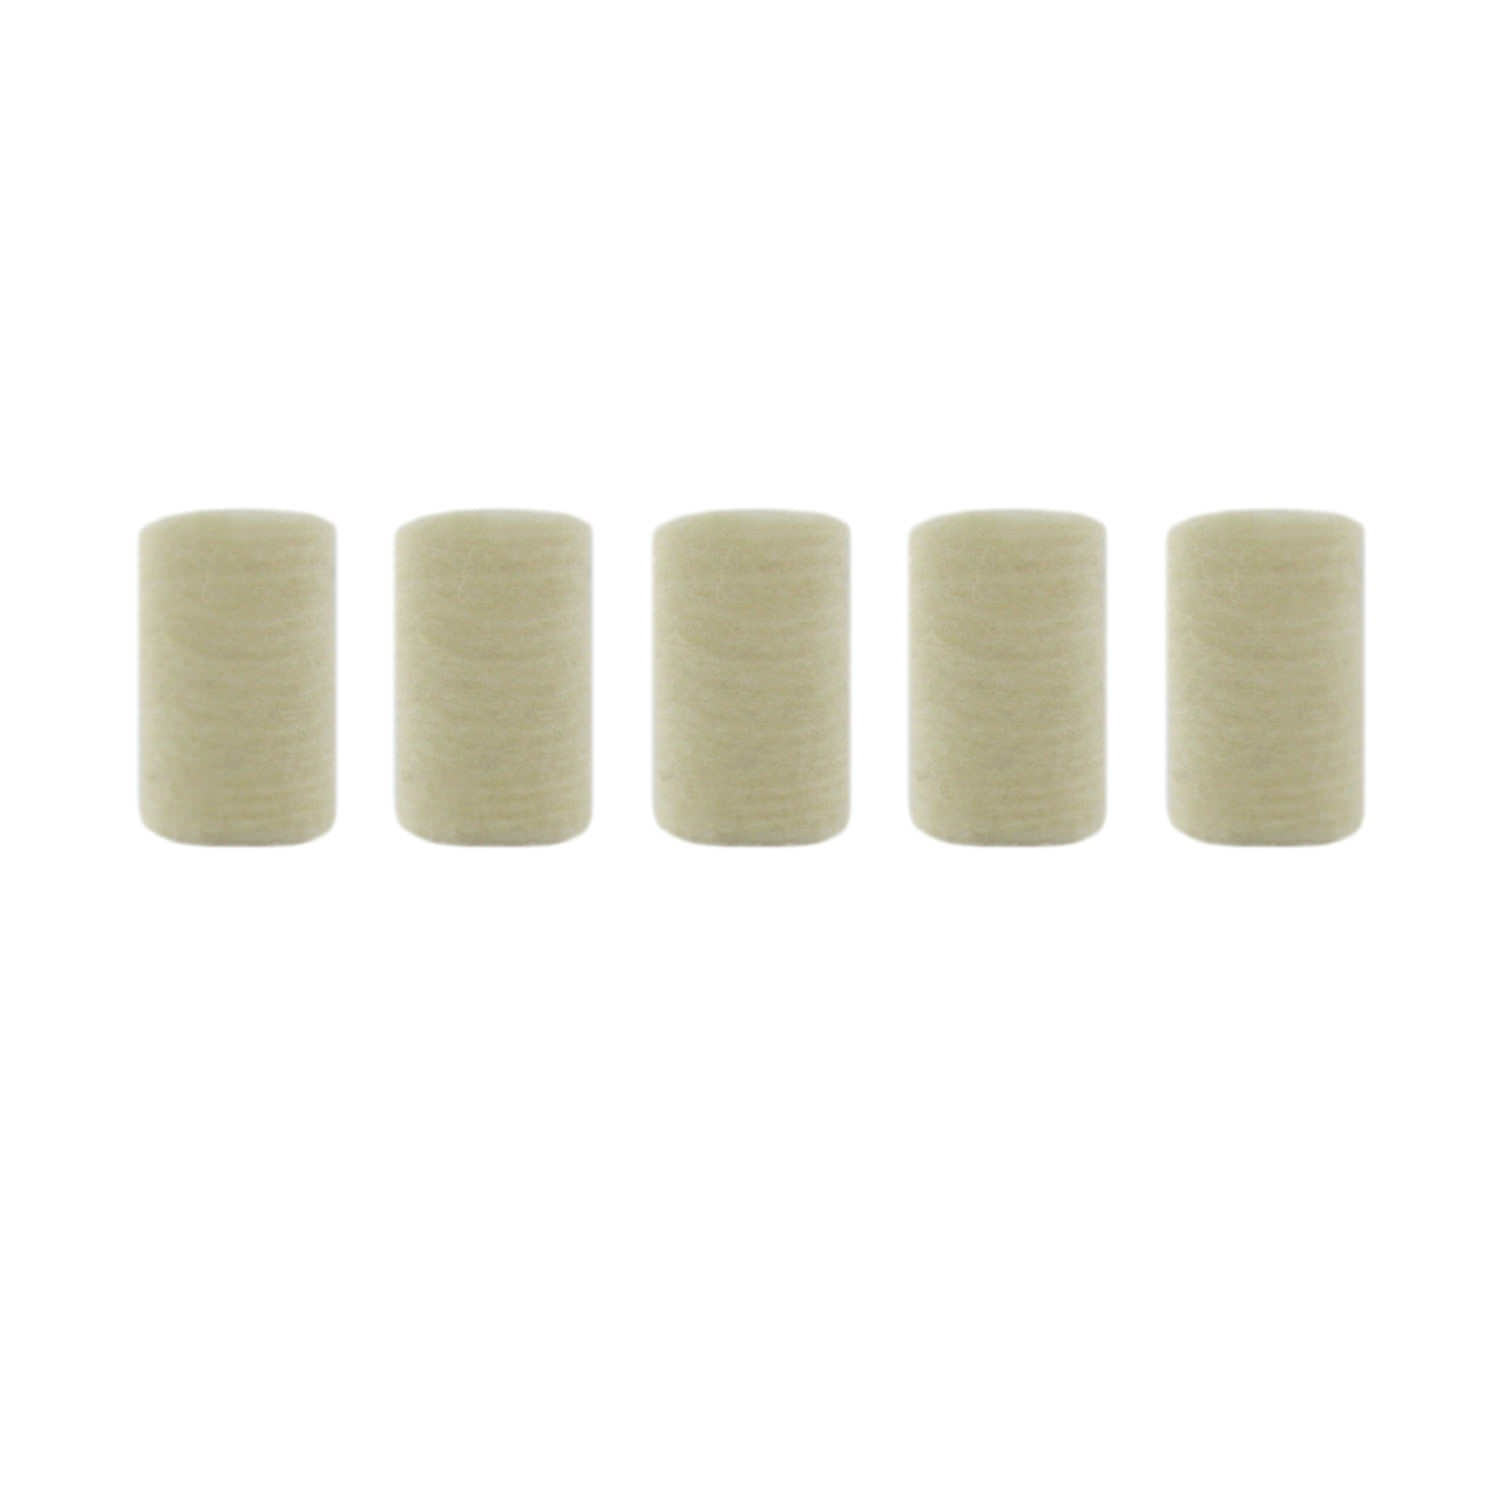 Air Filters for DeVilbiss Pulmomate Nebulizer Compressor (5 per pack)